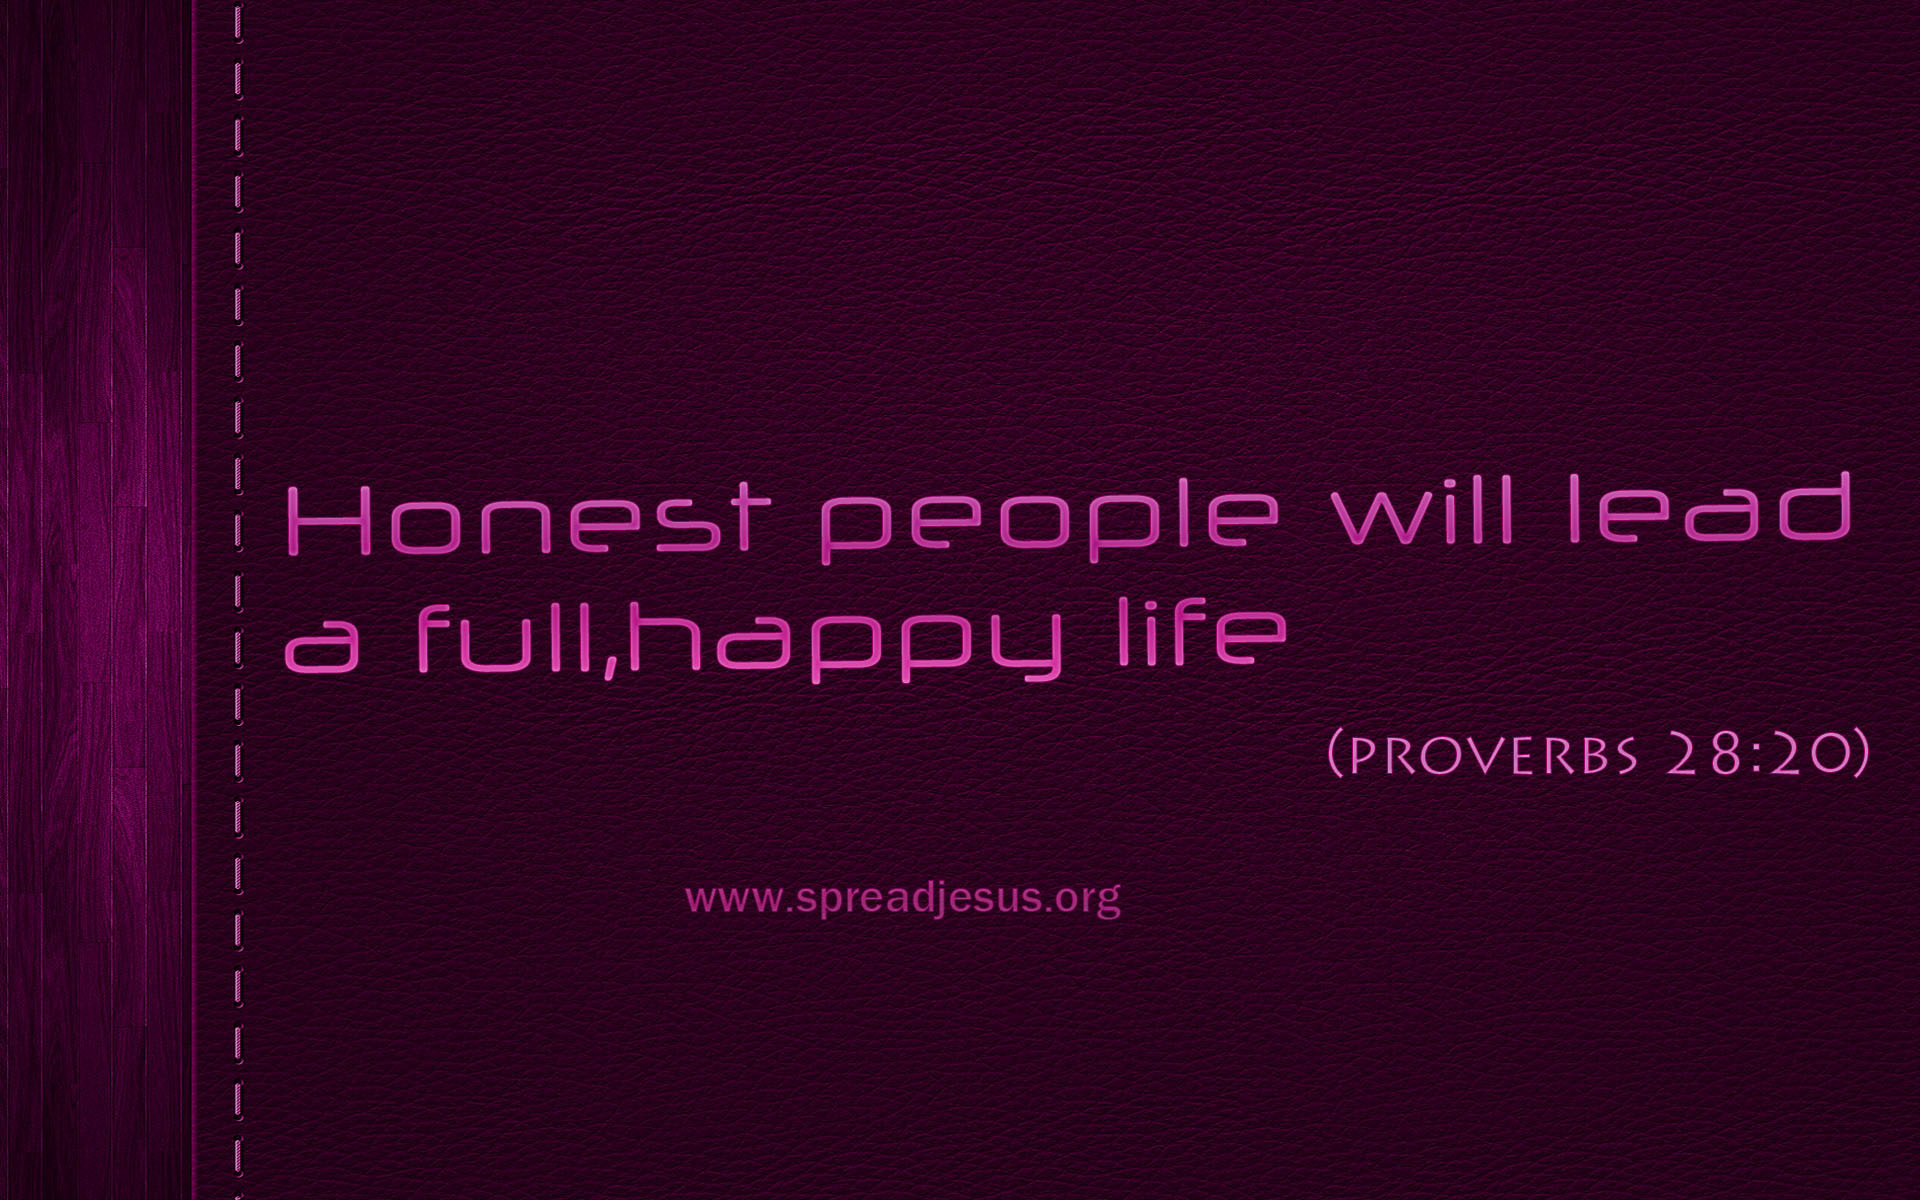 PROVERBS 28:20-Bible Quotes HD-WALLPAPERS DOWNLOAD-Bible Quotes-PROVERBS 28:20>Honest people will lead a full, Happy life (PROVERBS 28:20)